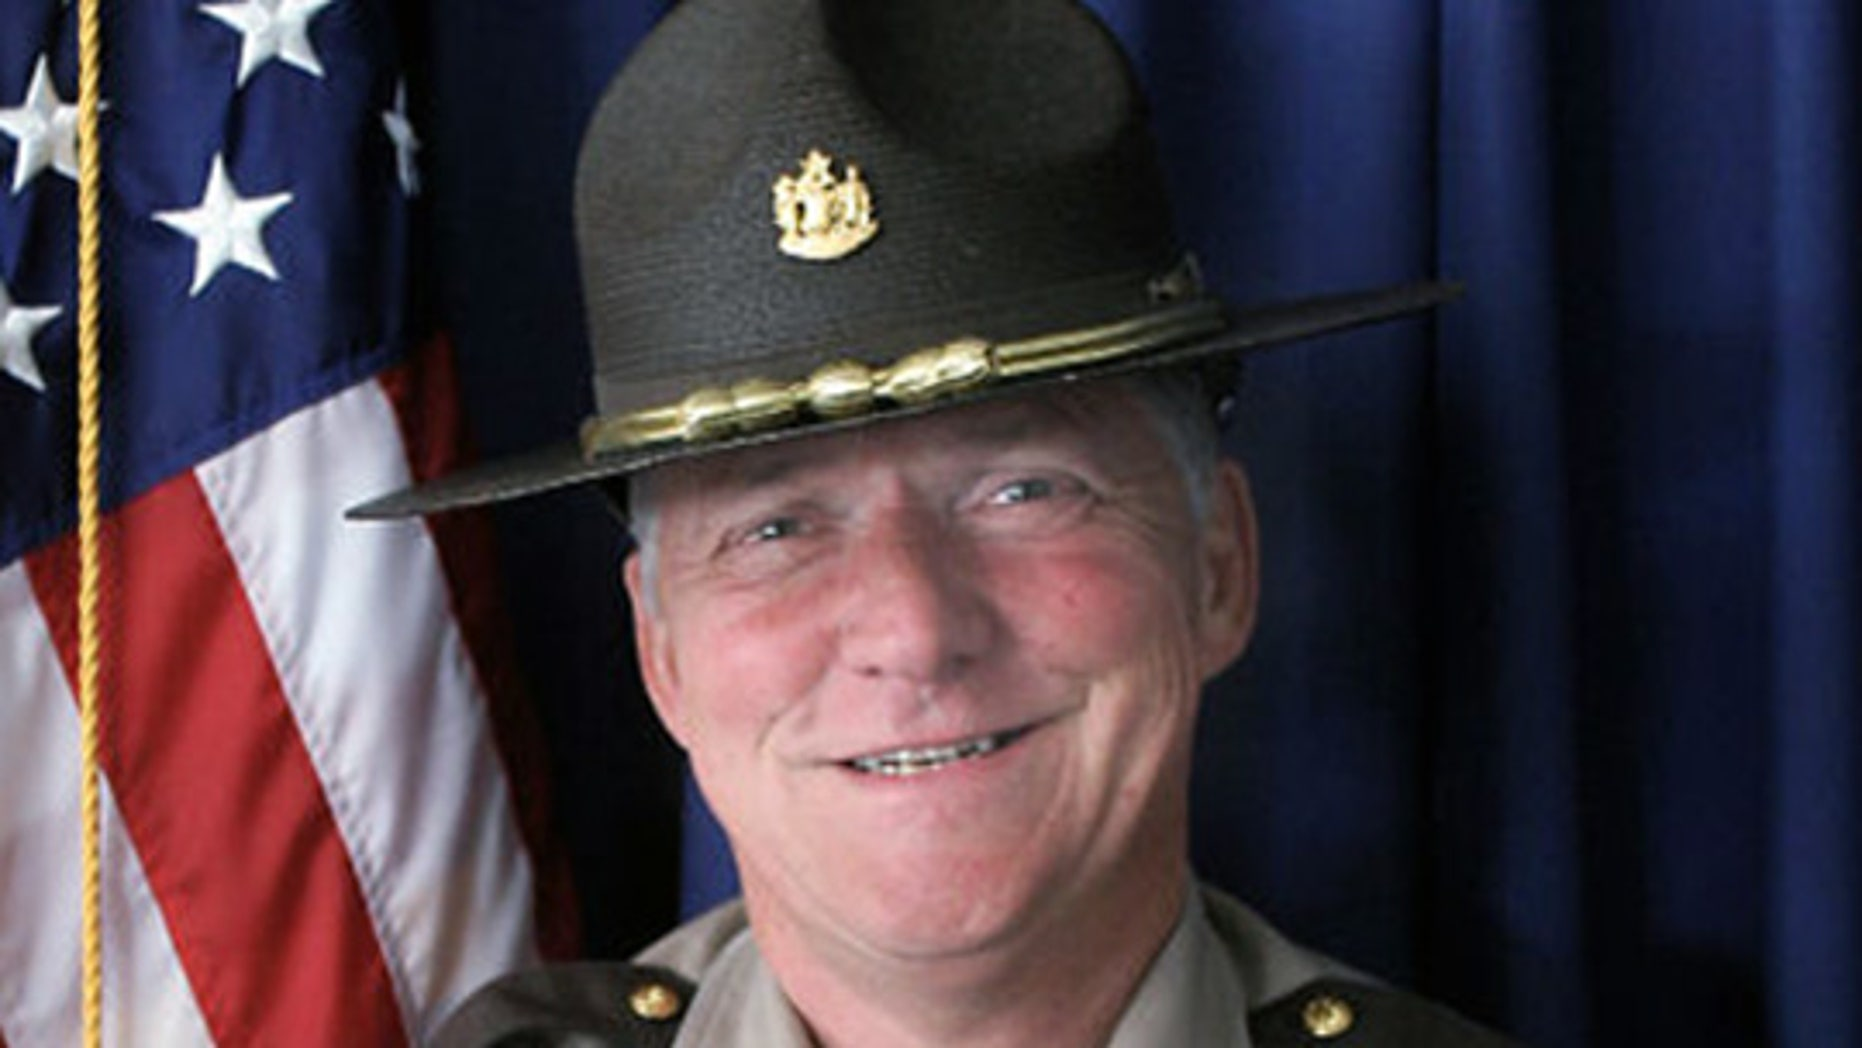 Oxford County (Maine) Sheriff Wayne Gallant.